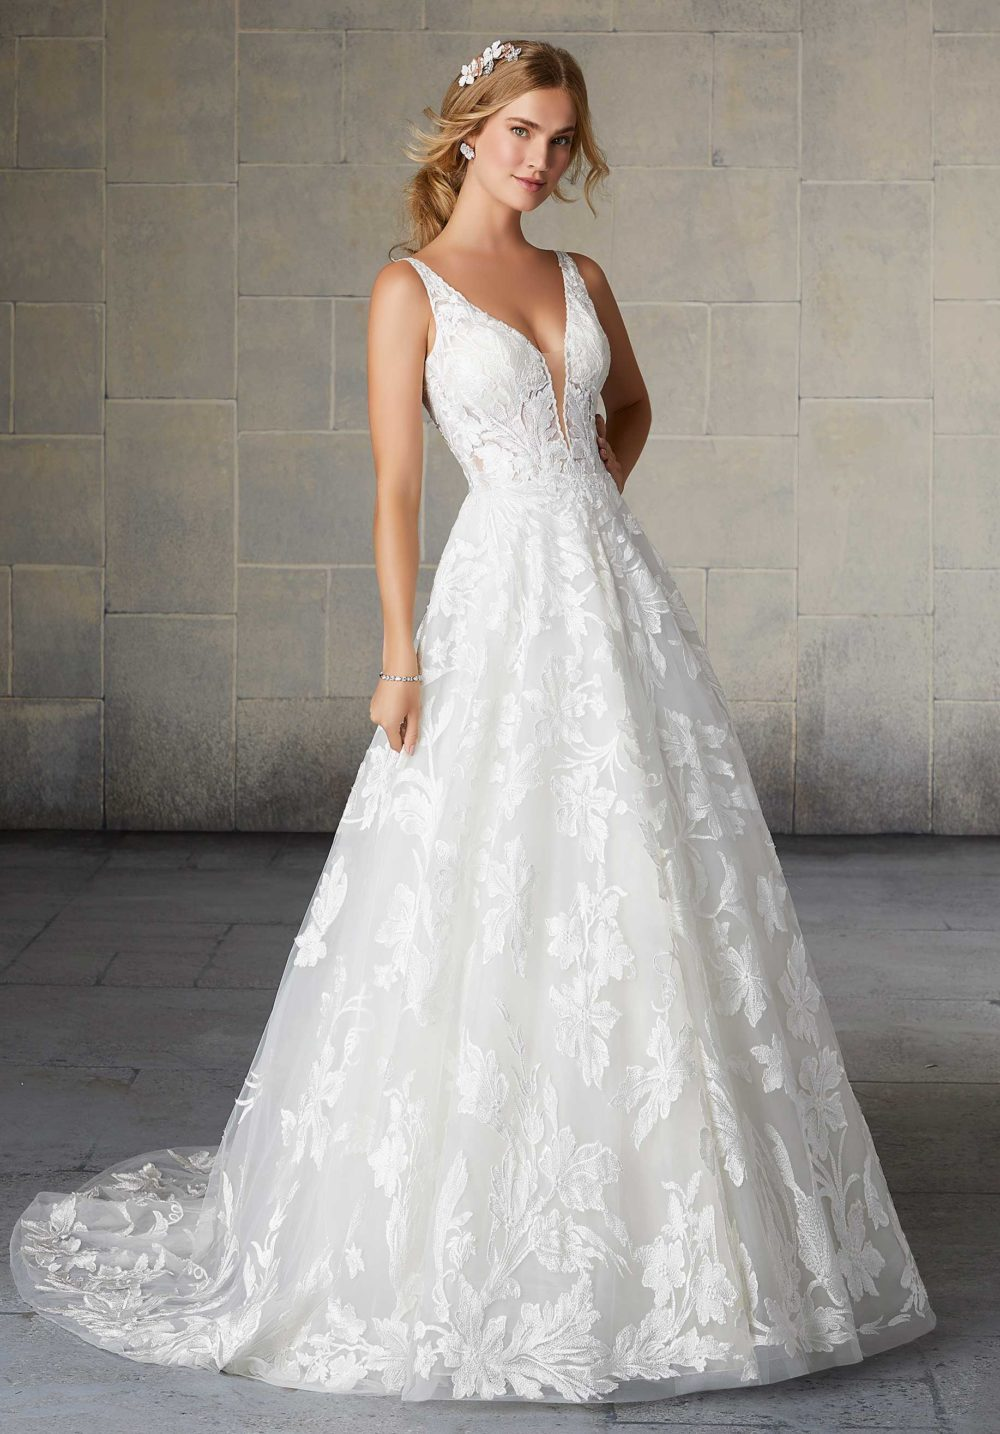 Morilee Wedding Gown Dress style 2135